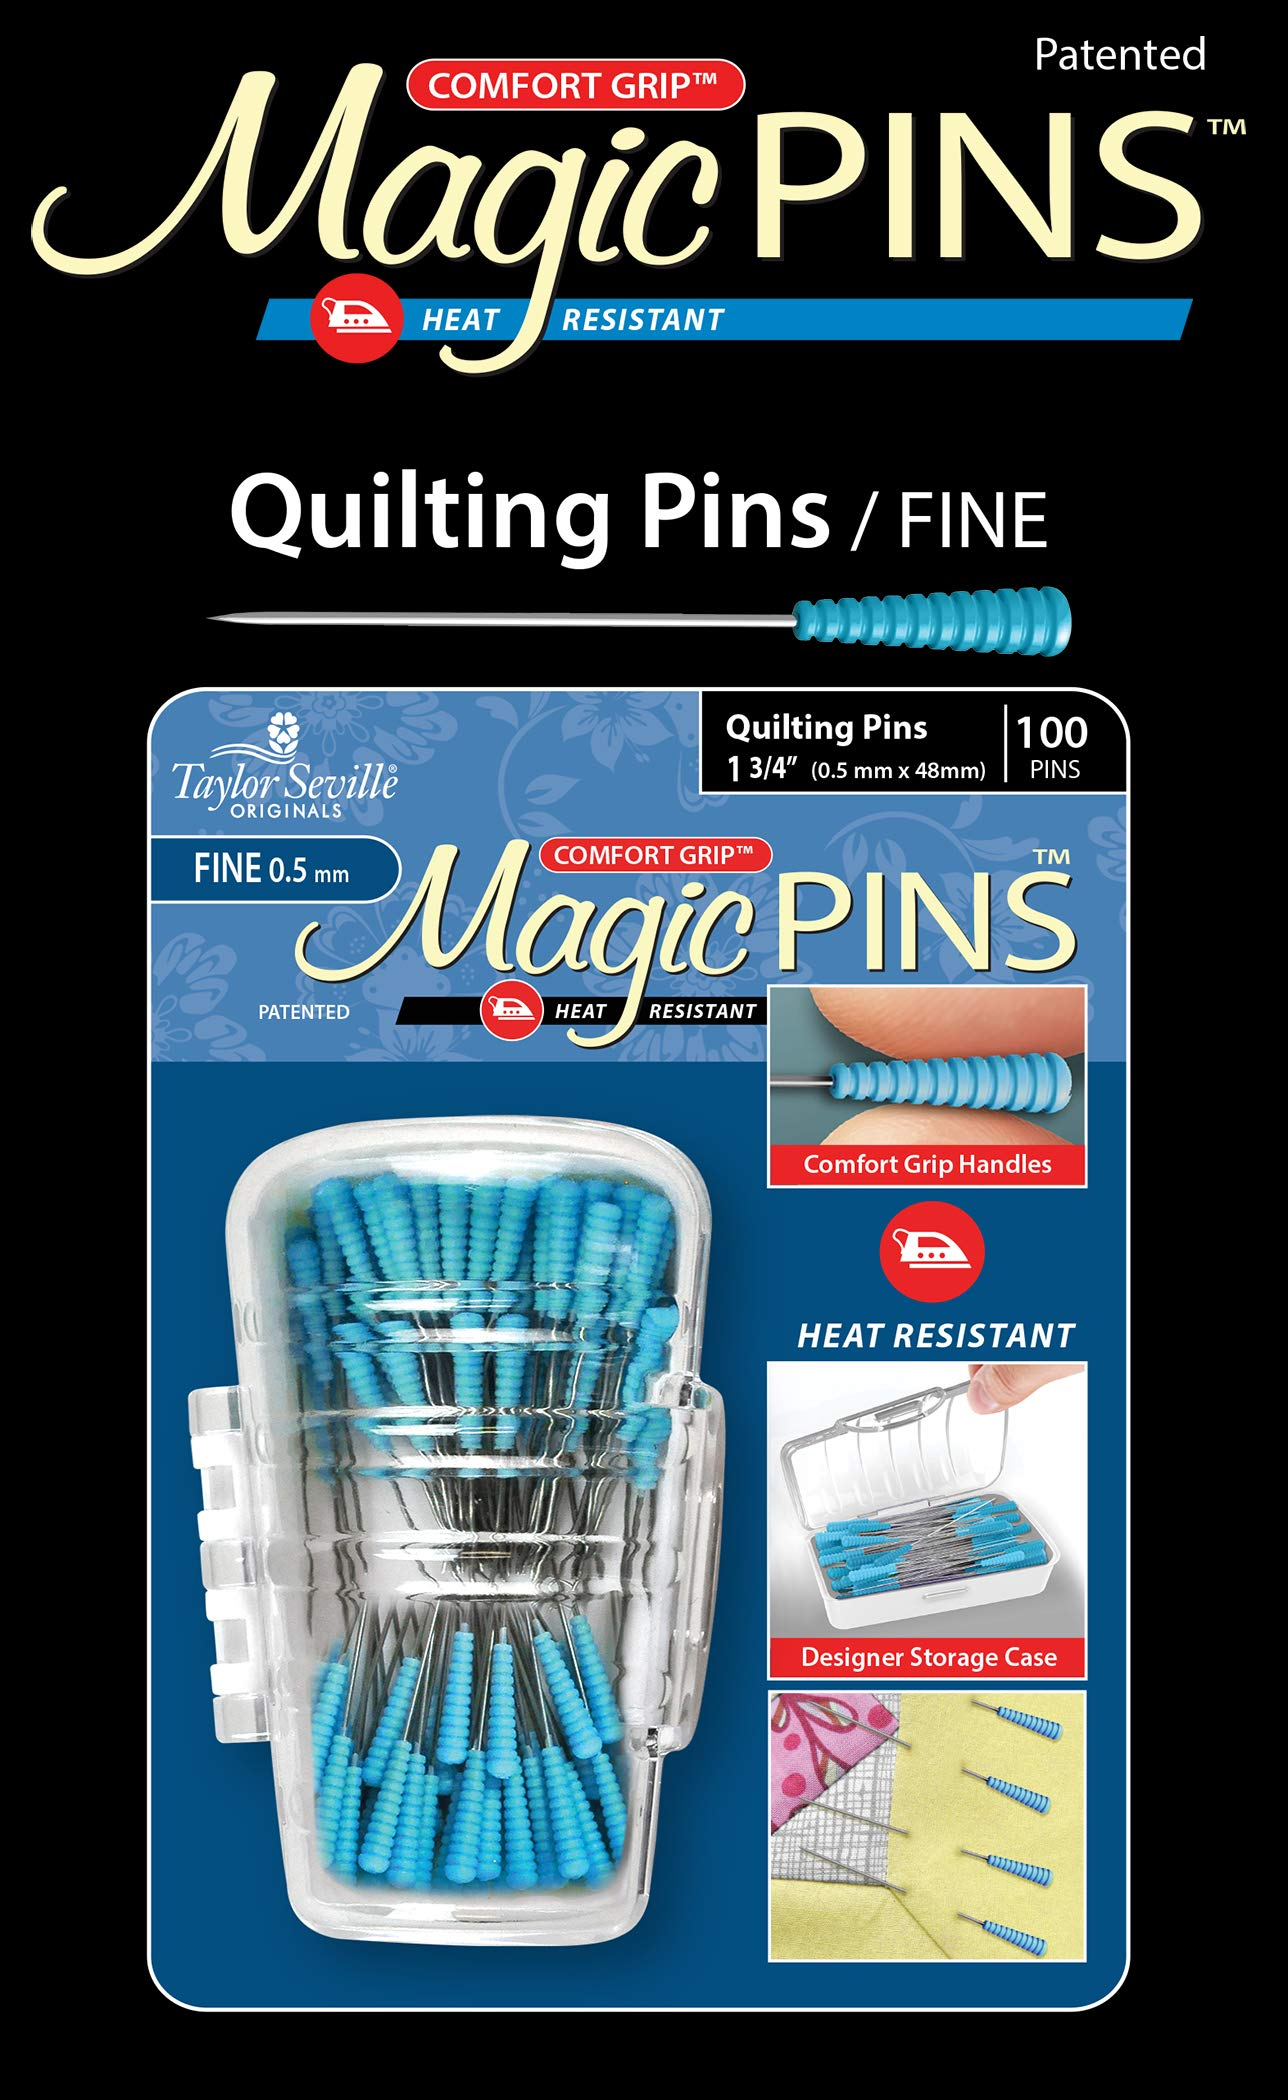 Taylor Seville Originals Comfort Grip Quilting Fine Magic Pins-Sewing and Quilting Supplies and Notions-Sewing Notions-100 Count by Taylor Seville Originals